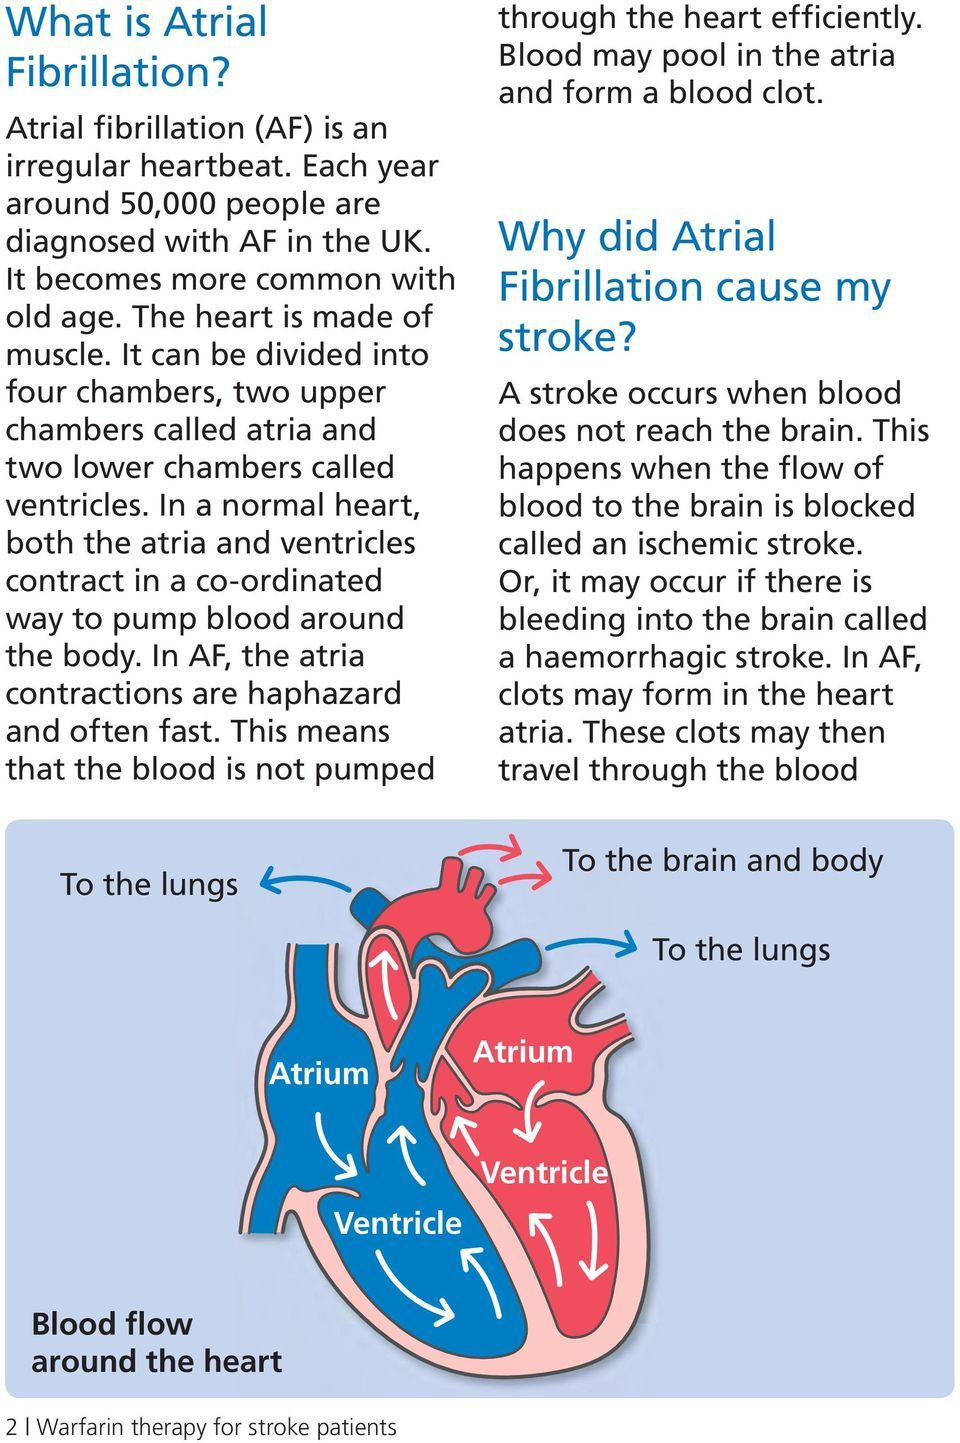 In a normal heart, both the atria and ventricles contract in a co-ordinated way to pump blood around the body. In AF, the atria contractions are haphazard and often fast.